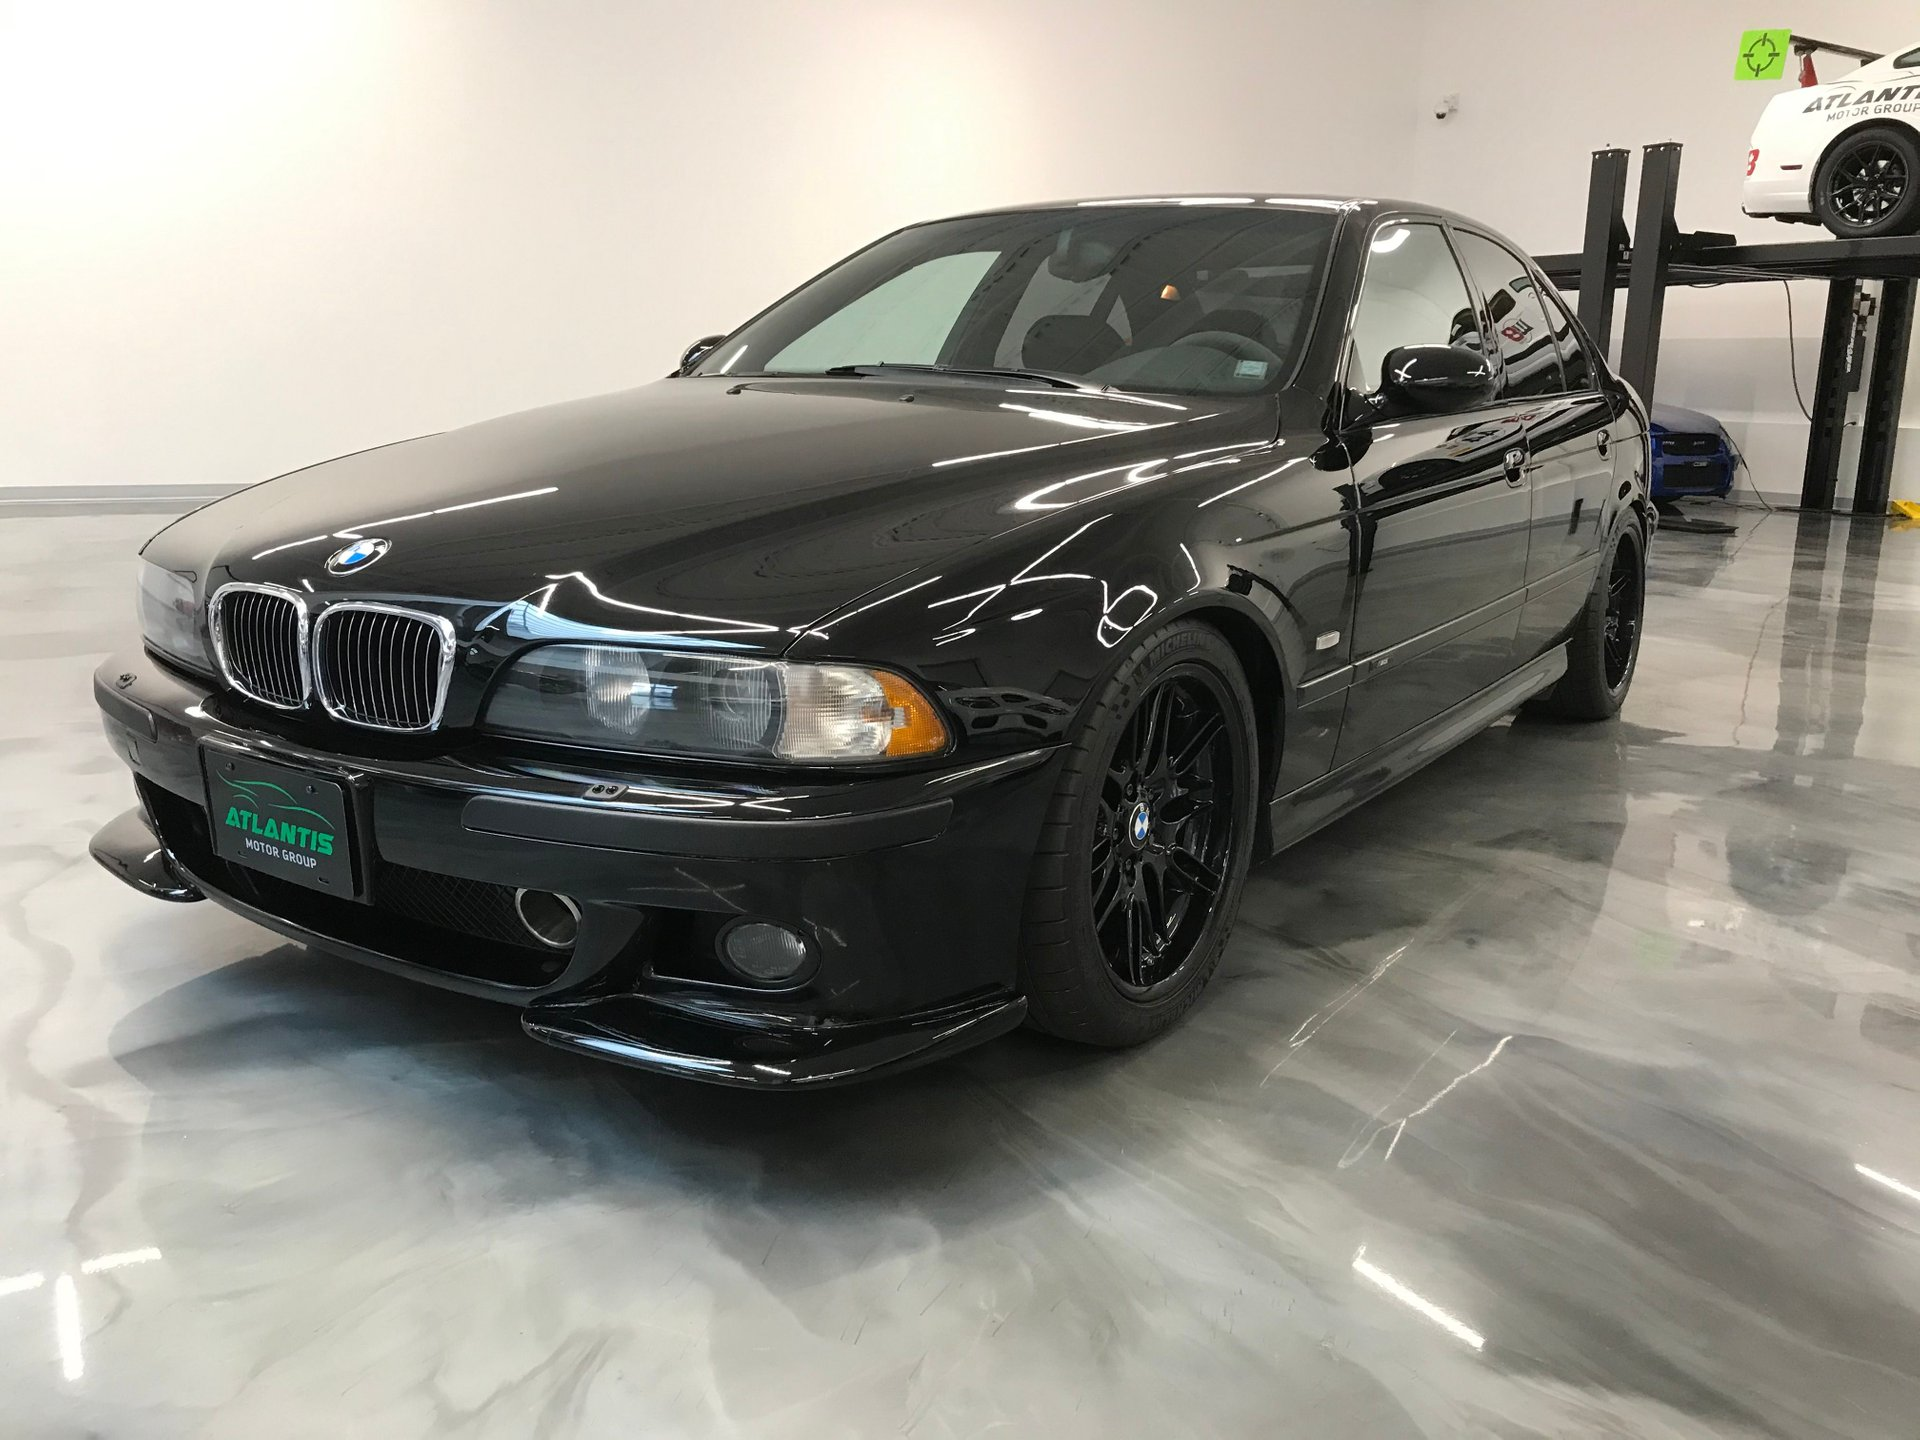 2000 bmw sold thank you m5 4dr sdn 6 spd manual